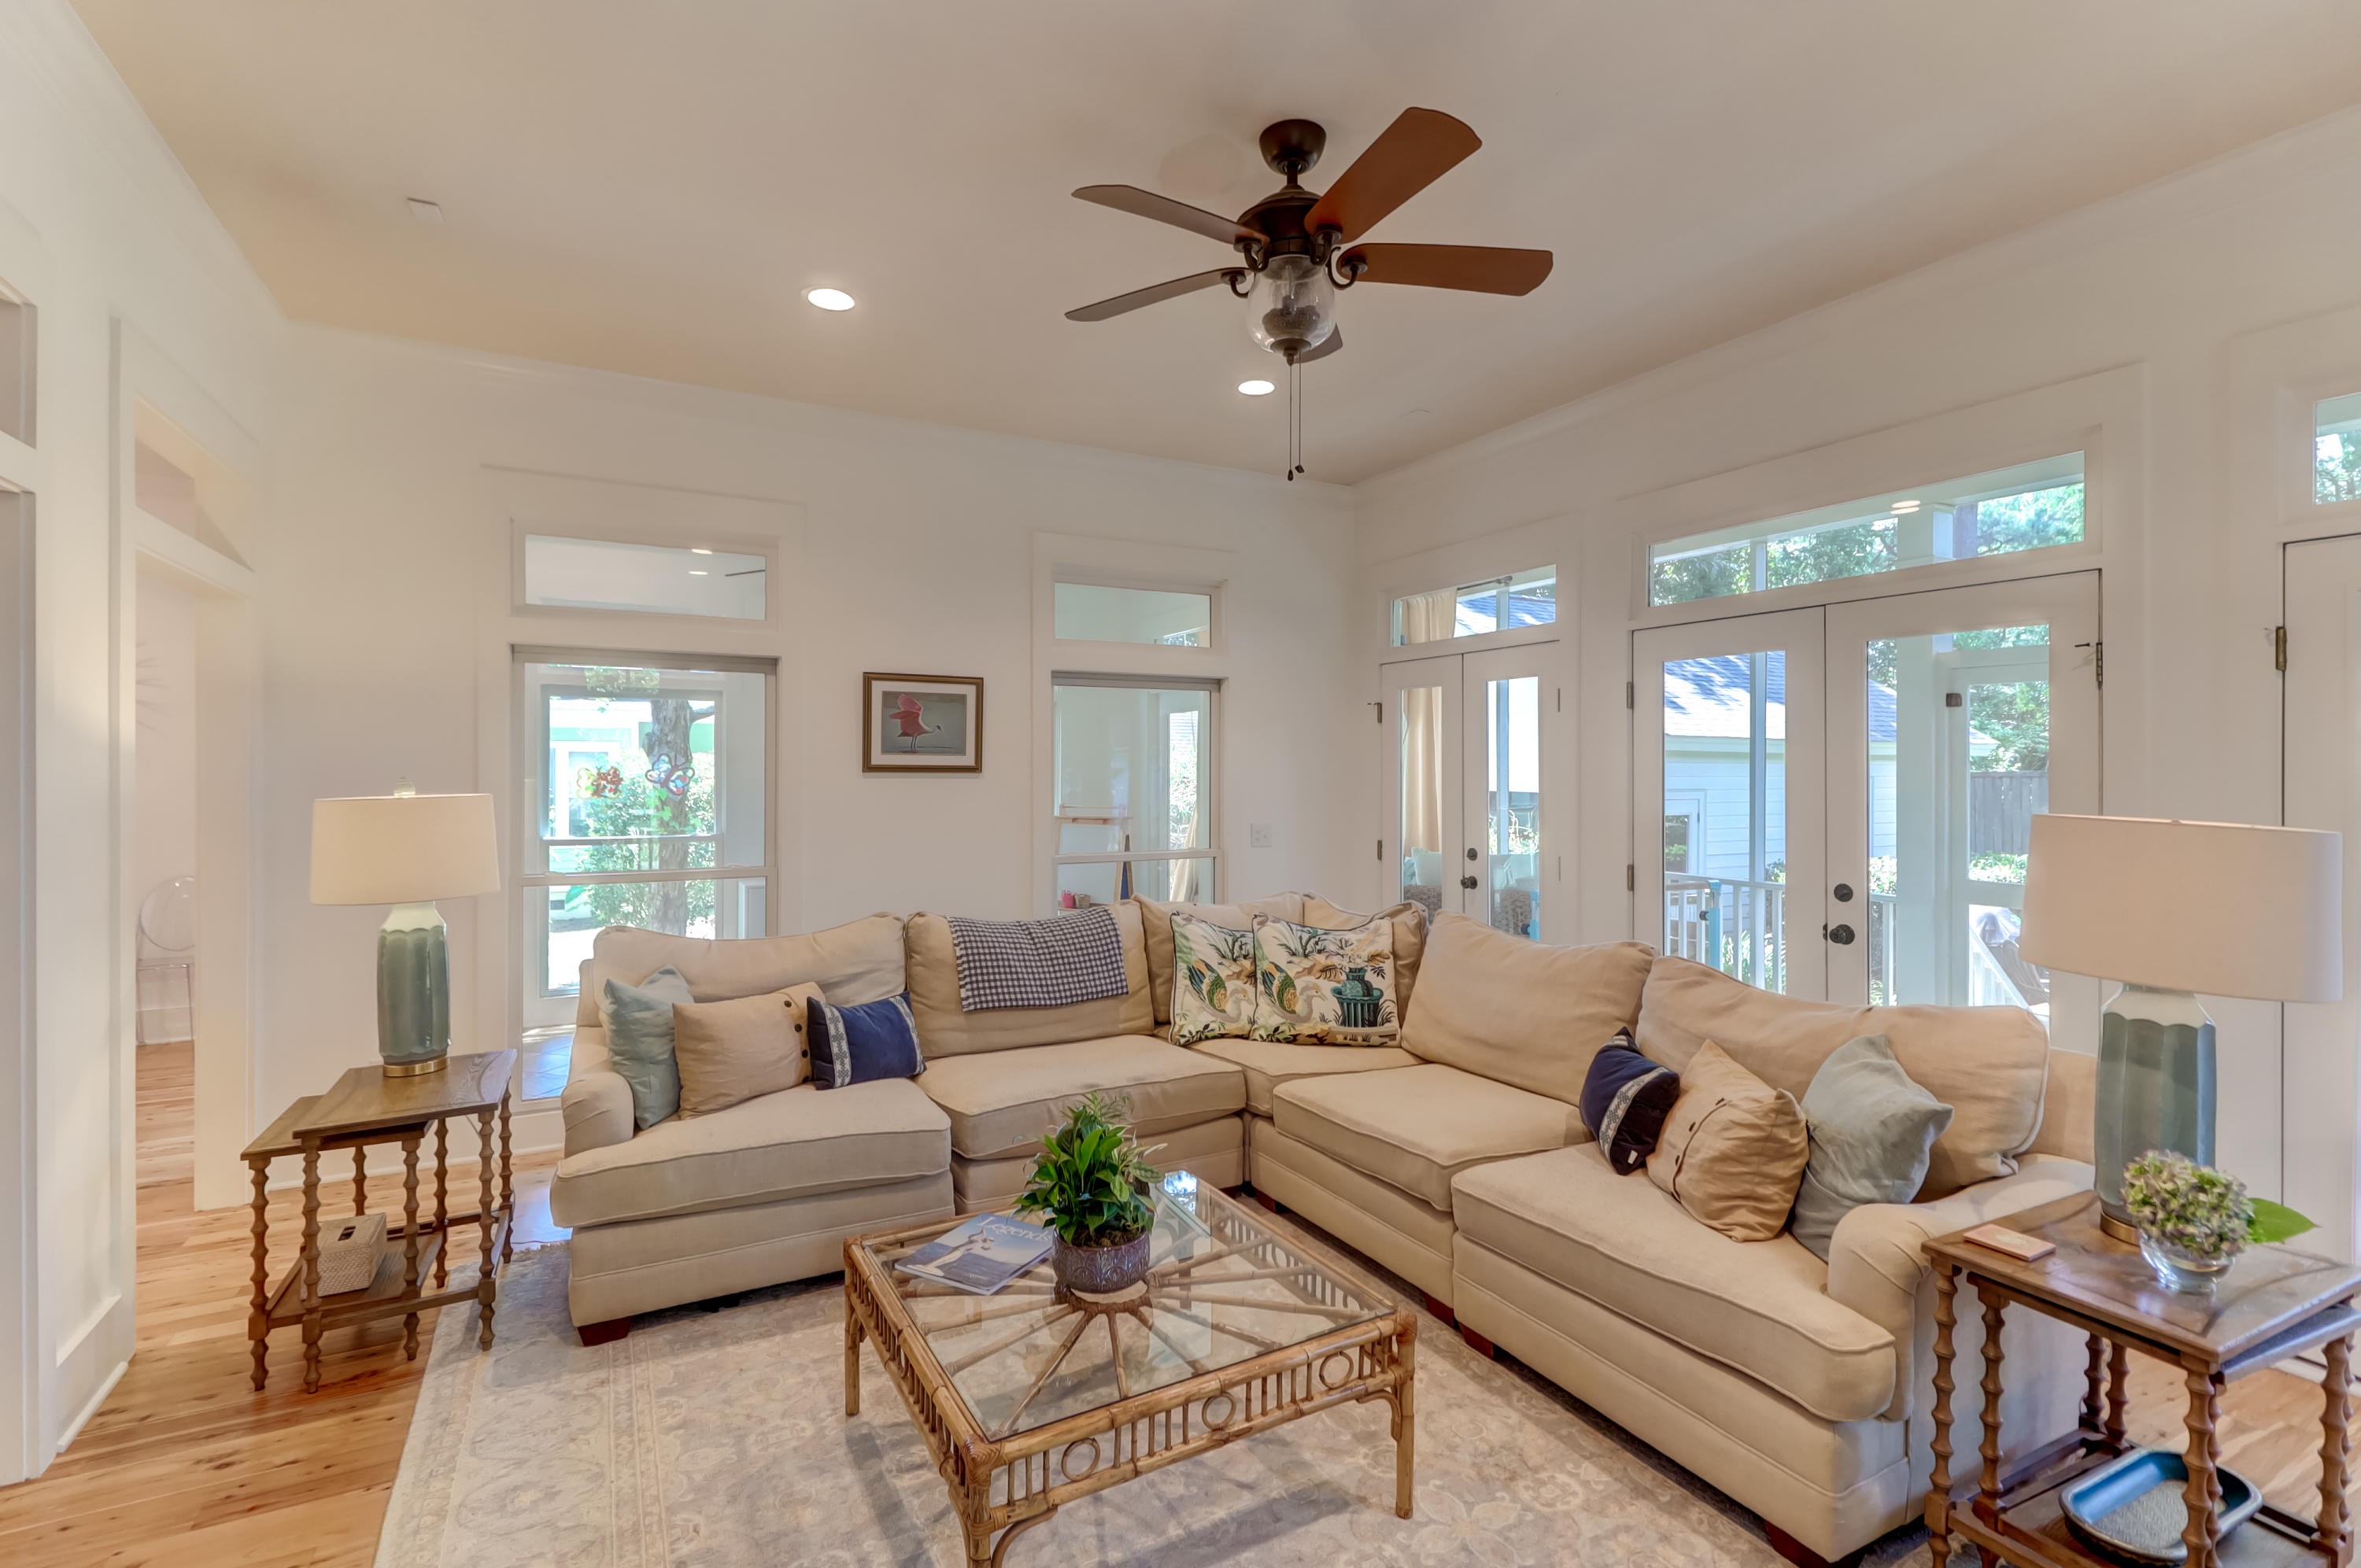 The Villages In St Johns Woods Homes For Sale - 5056 Coral Reef Dr, Johns Island, SC - 16